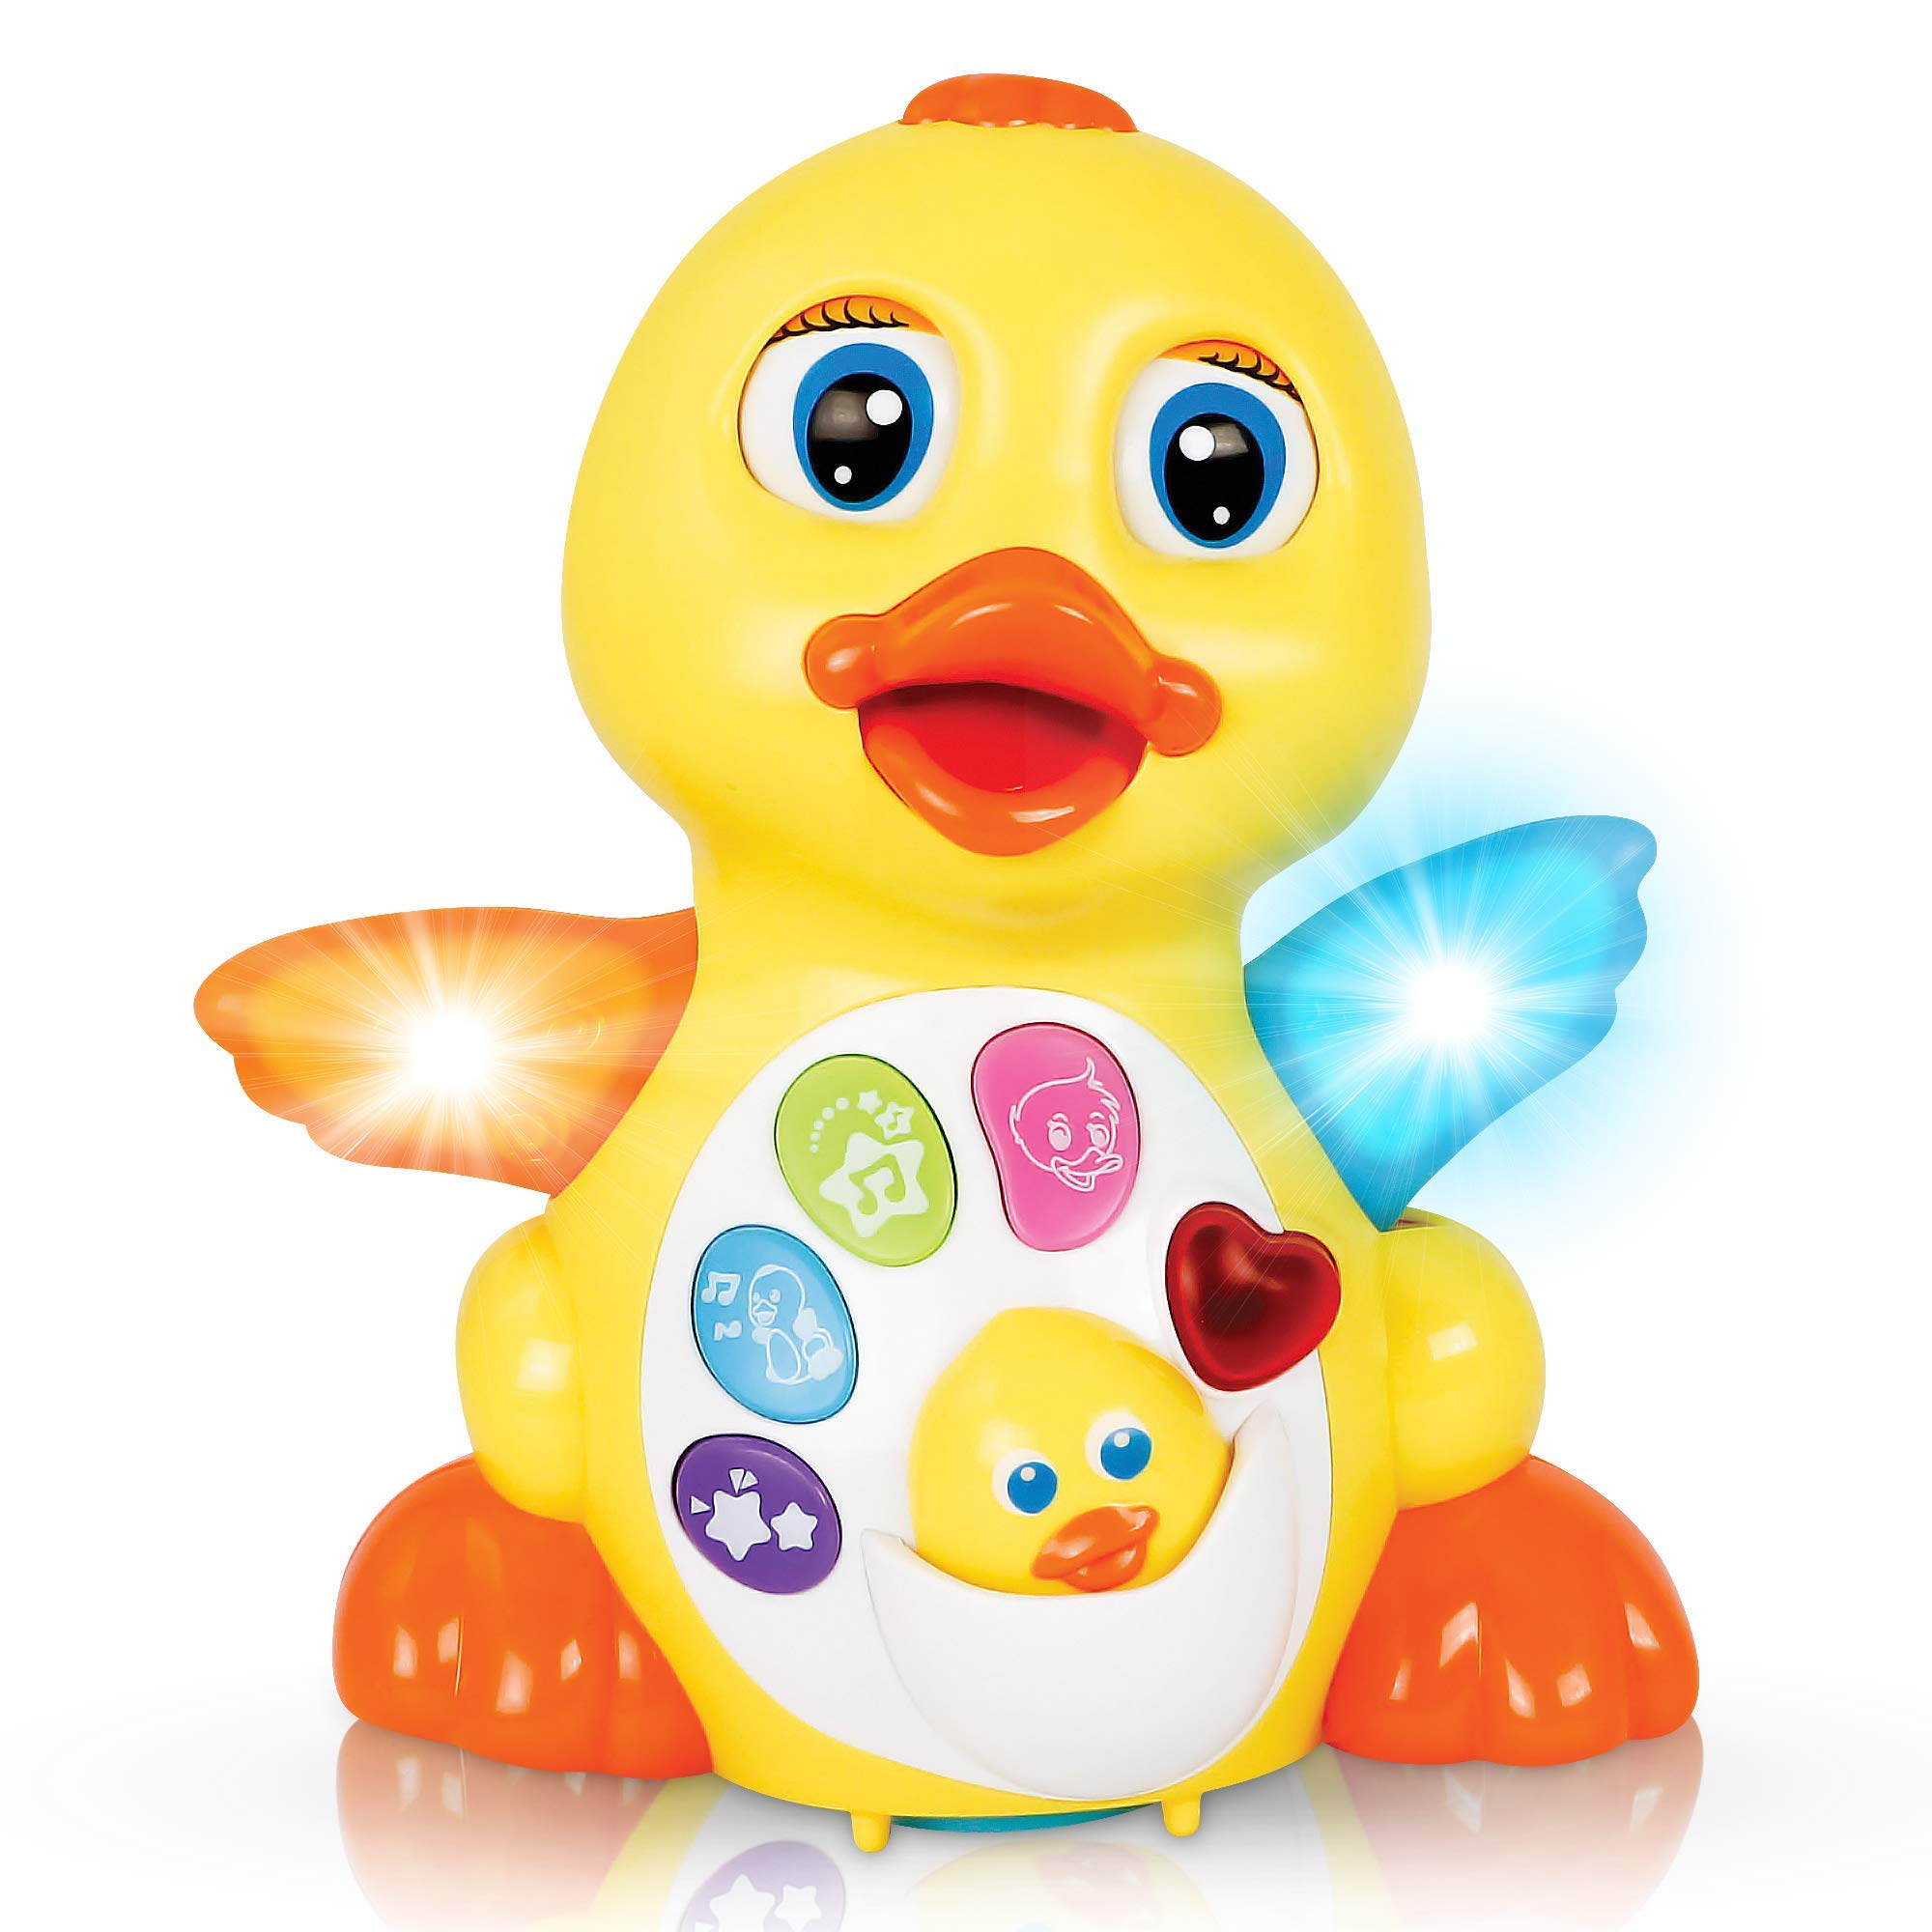 CifToys Musical Duck Toys for 3 2 1 Year Old Gifts, Toddler Toys- Dancing, Singing, Electronic Duck Toy with Lights and Adjustable Sound